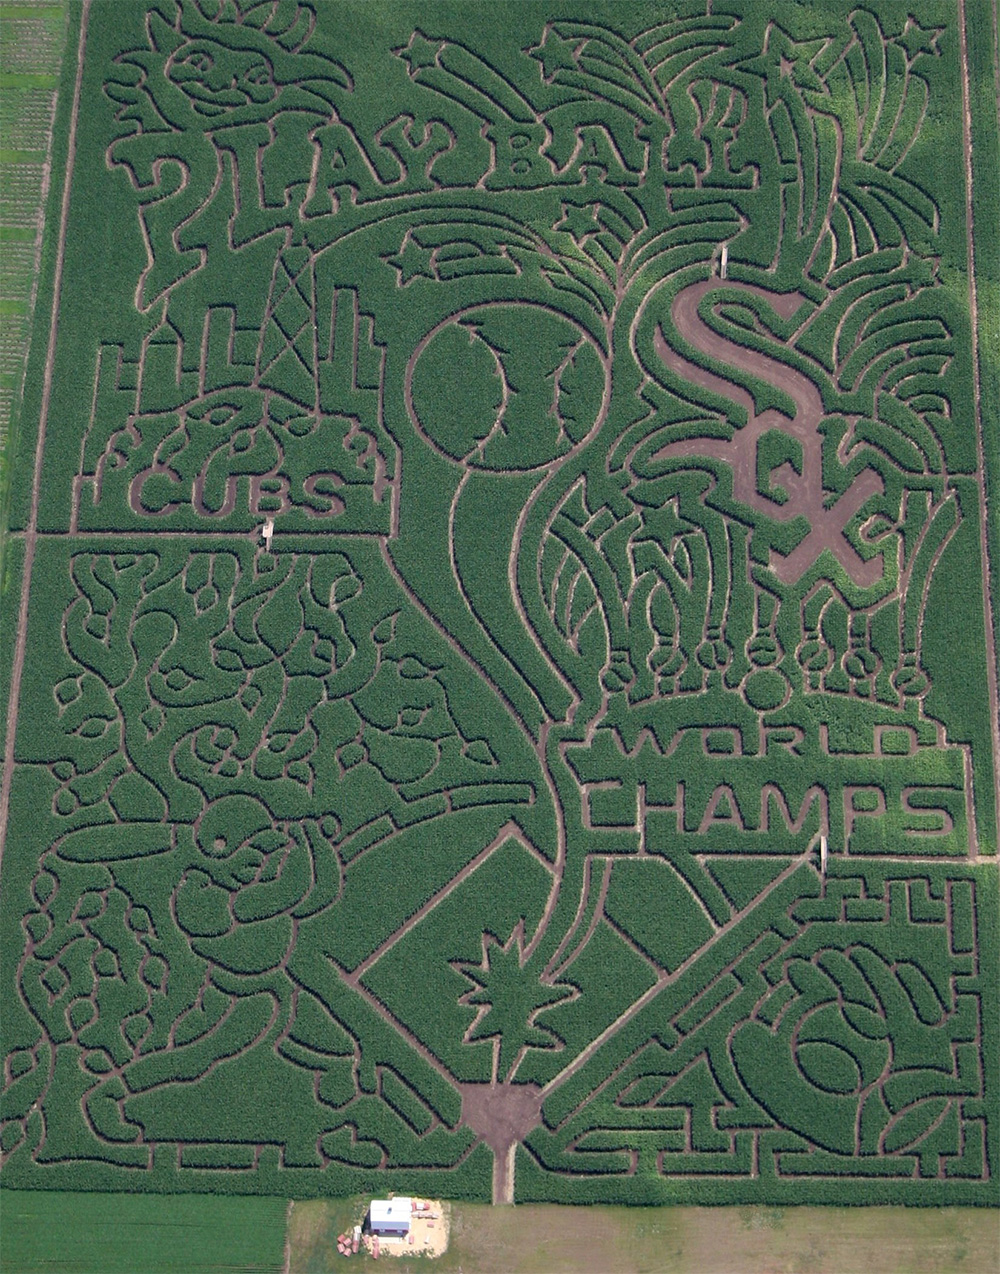 2006 Corn Maze - Play Ball!